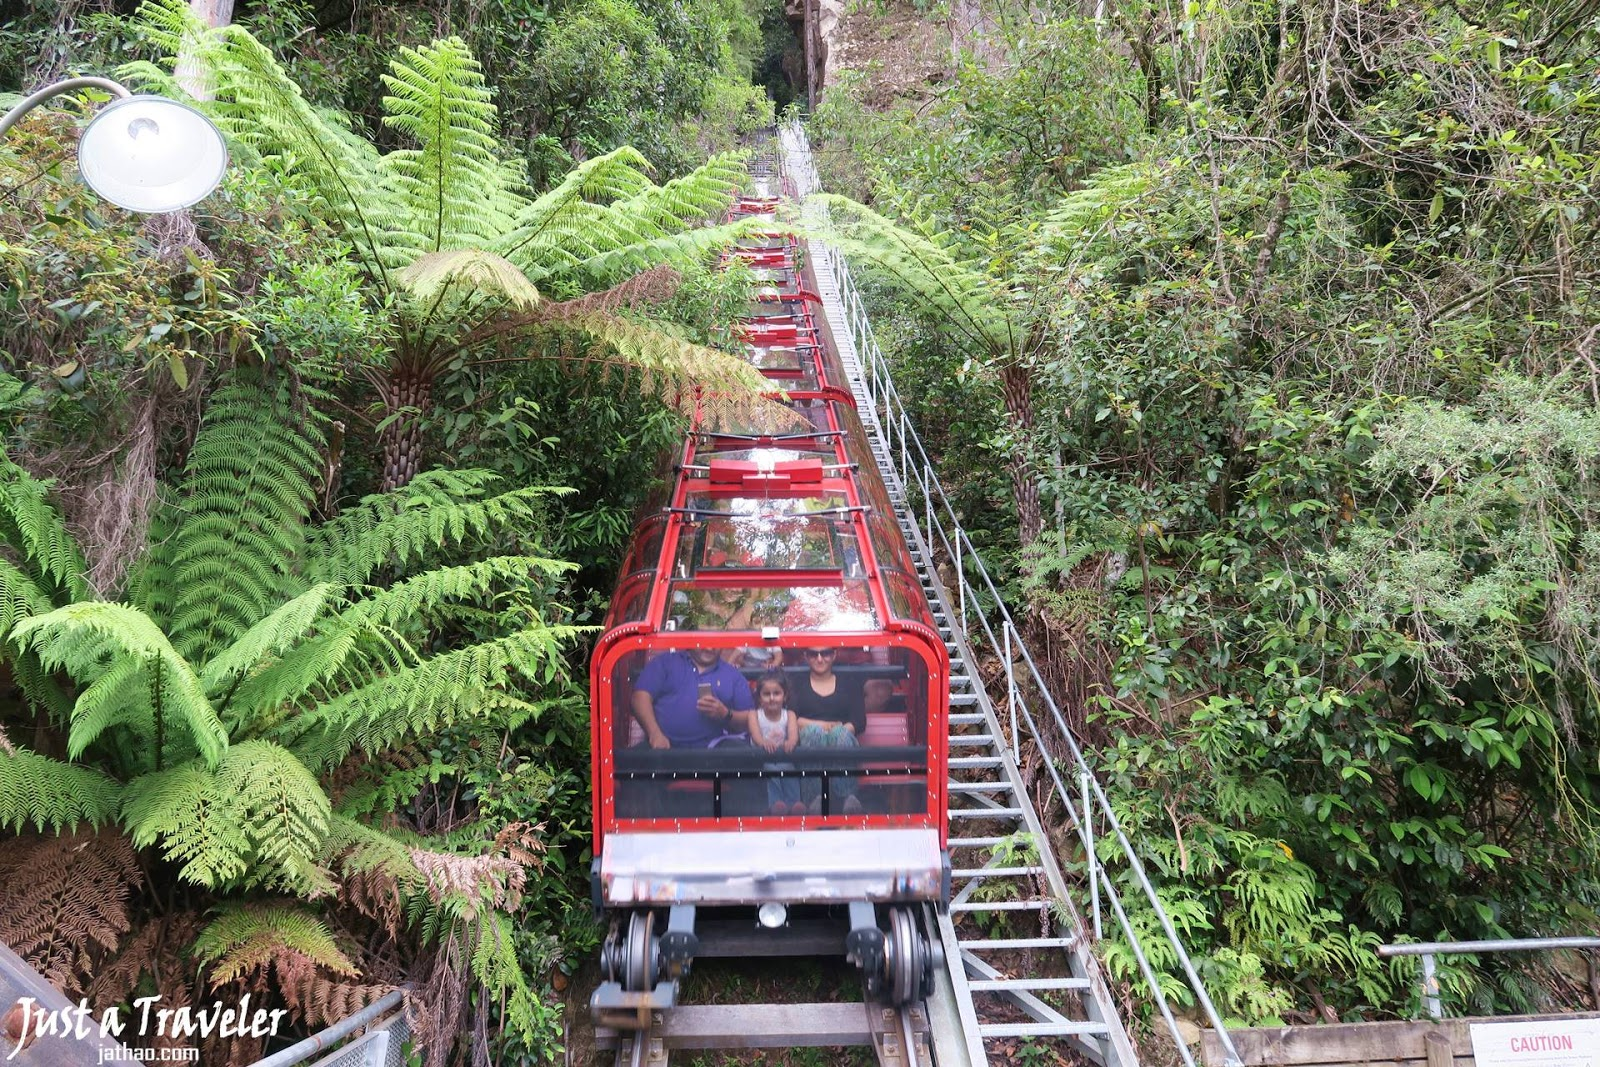 雪梨-景點-藍山-景觀世界-Railway-澳洲藍山-Sydney-Blue-Mountain-Scenic-World-Tourist-Attraction-Australia